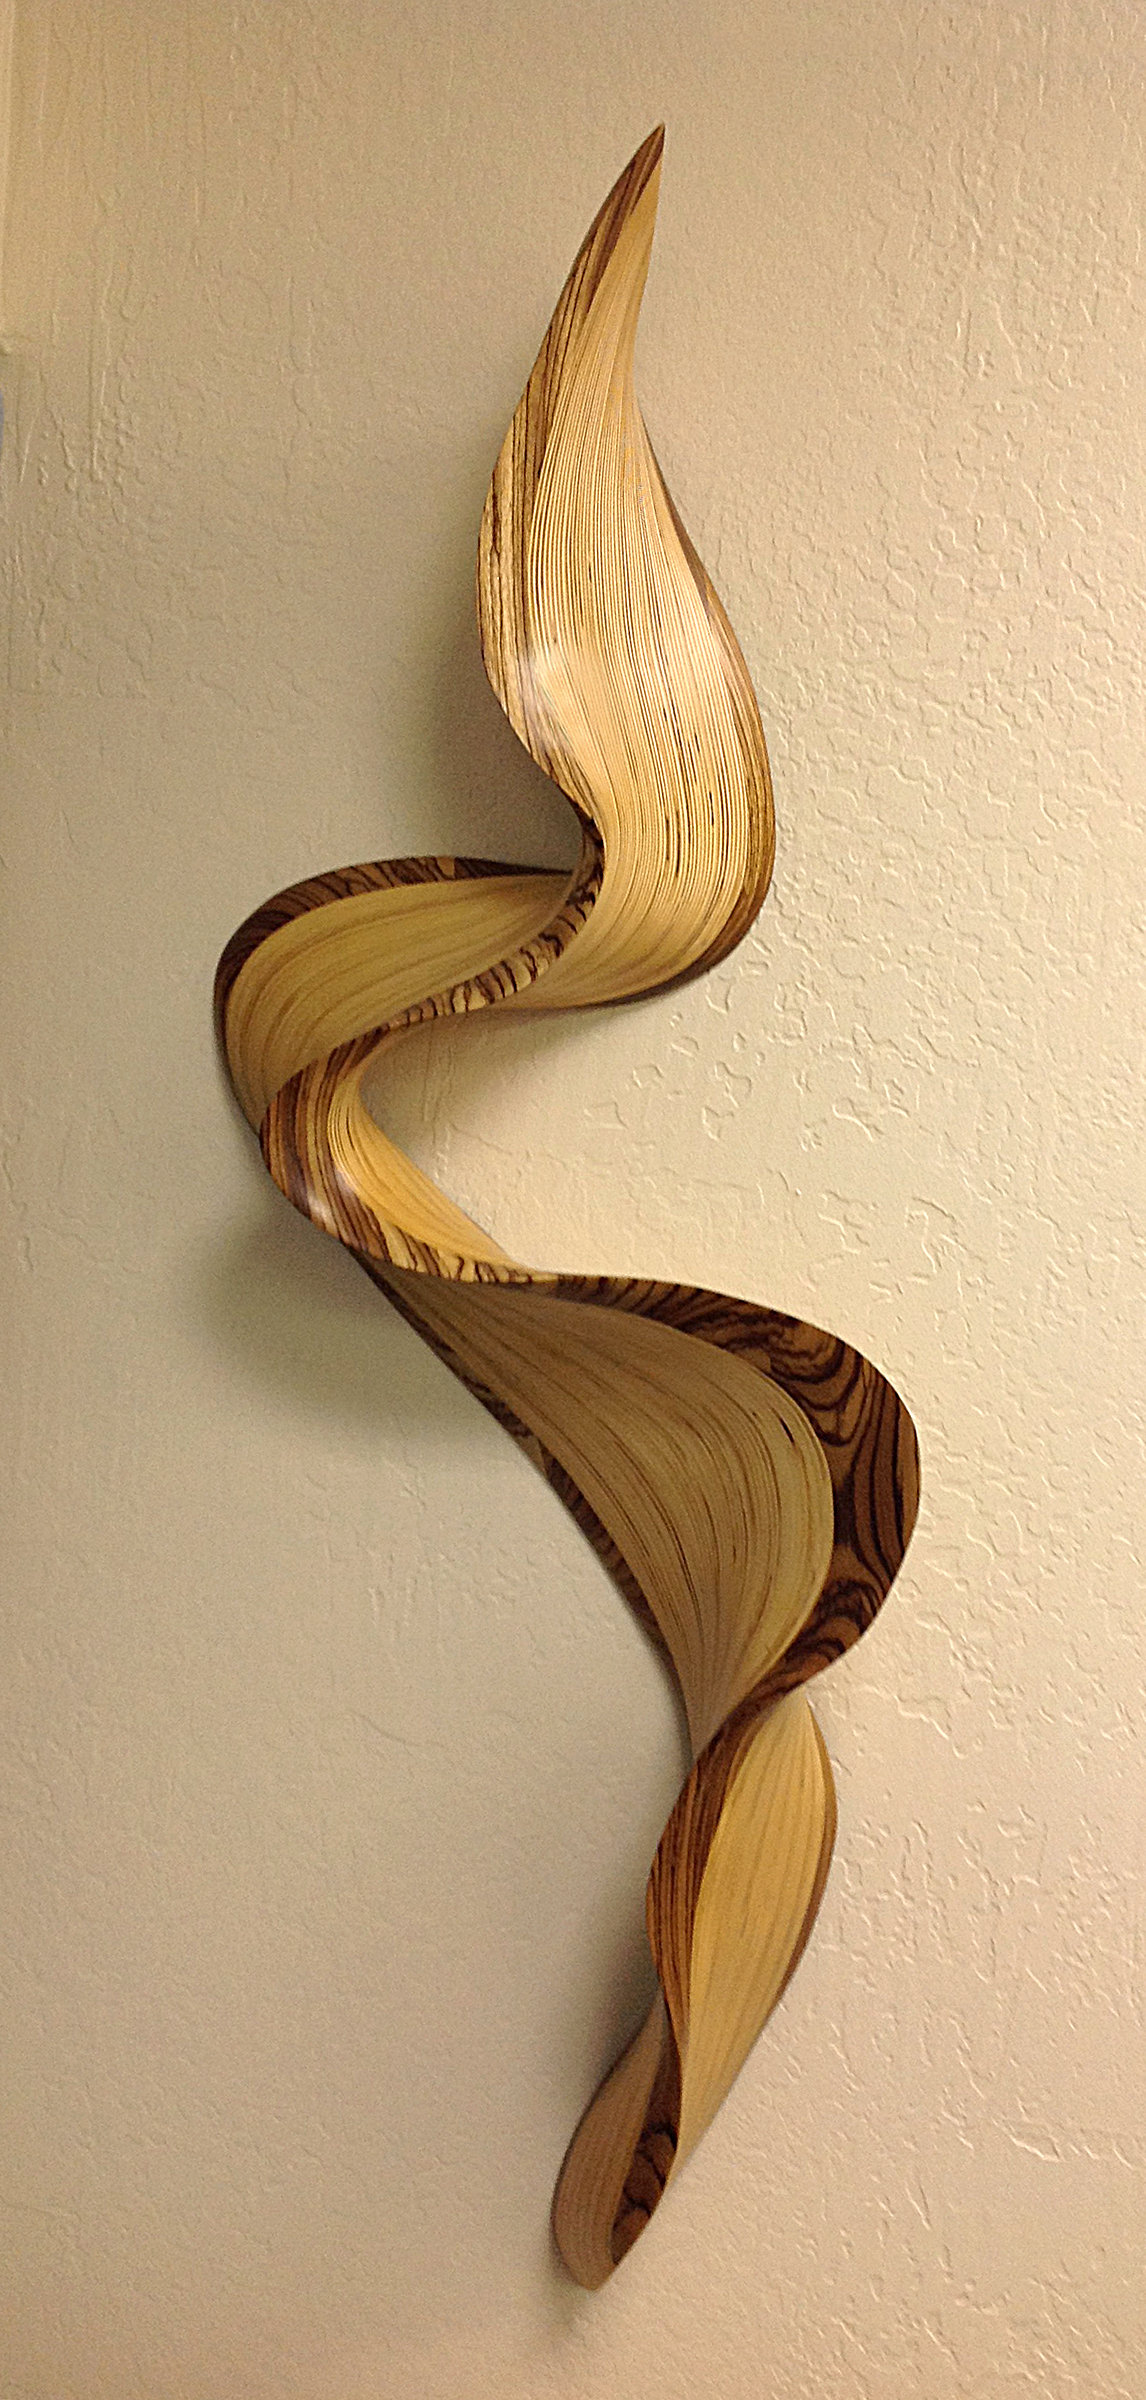 Philadelphia zebrawood wave by kerry vesper wood wall sculpture